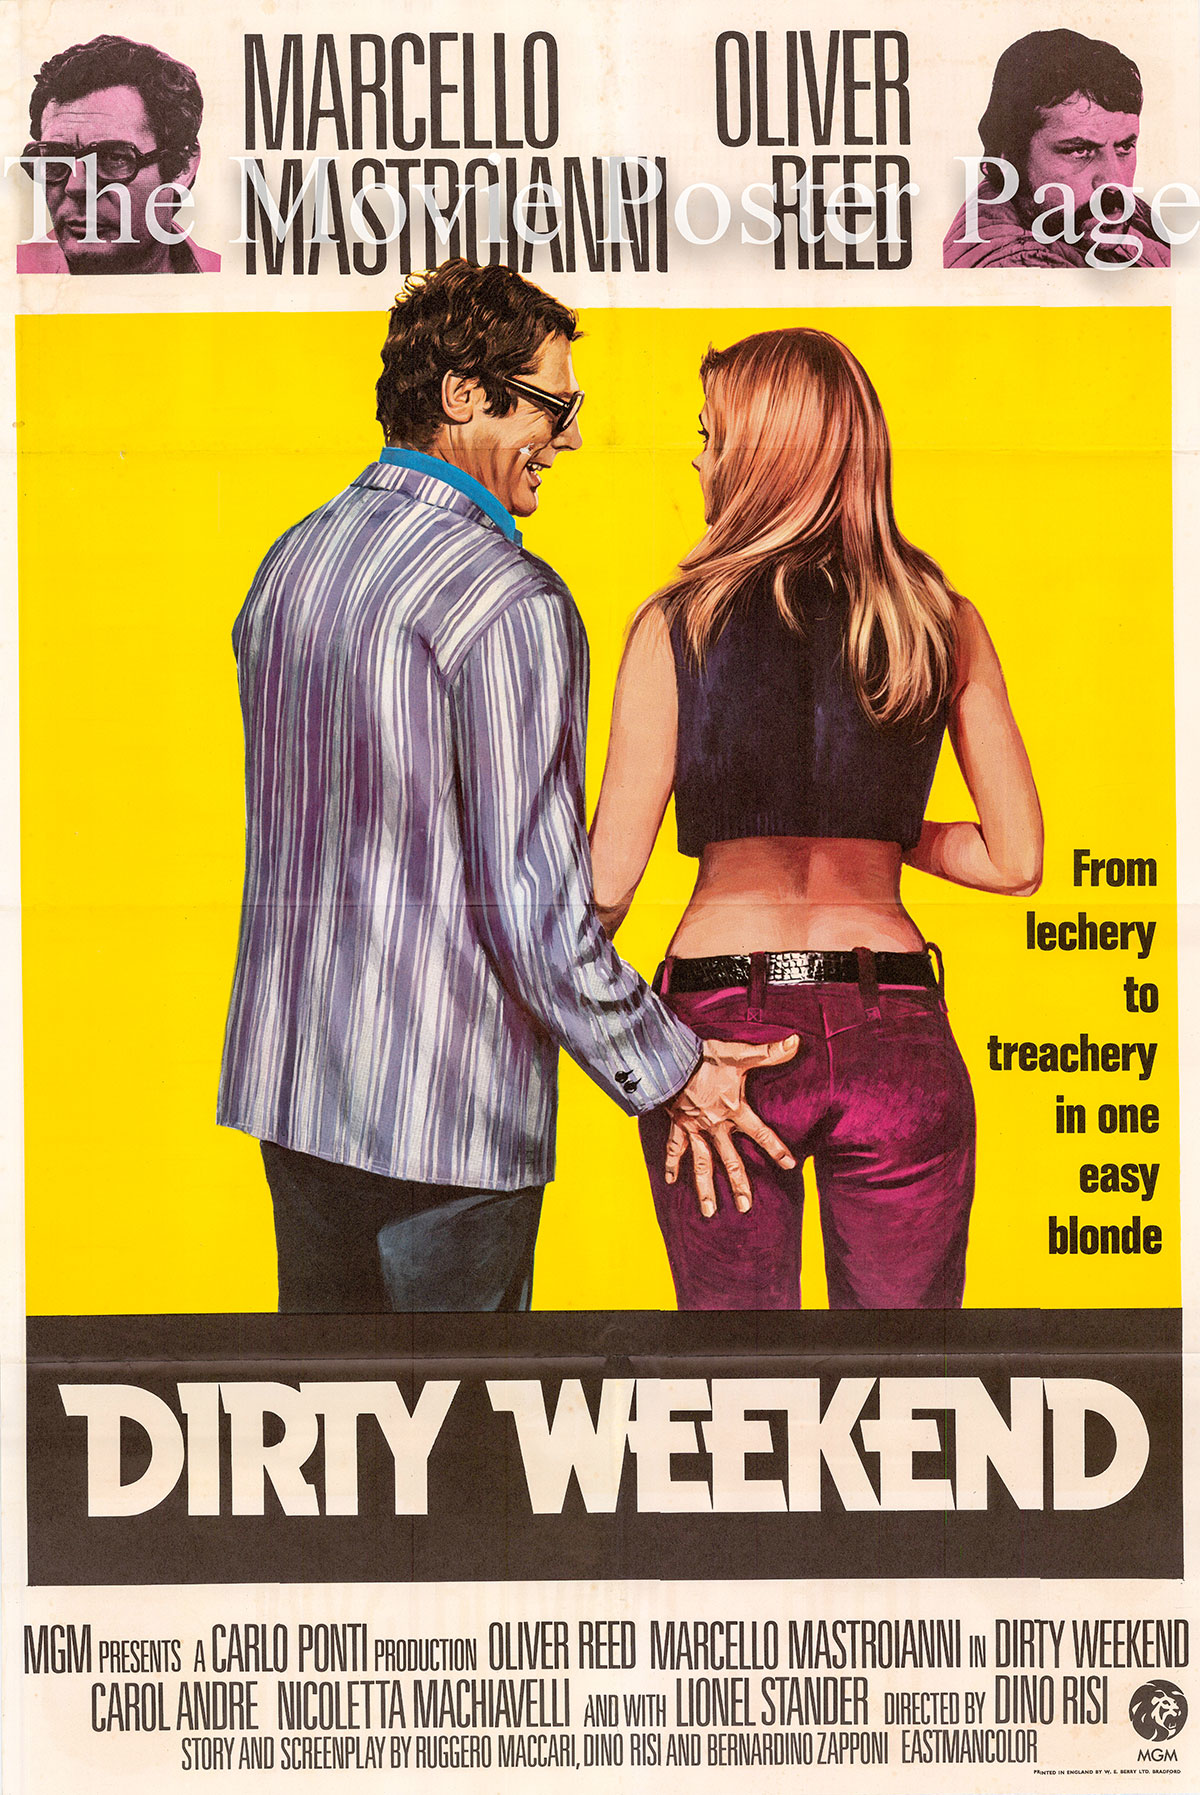 Pictured is a UK one-sheet poster for the 1972 Dino Risi film Dirty Weekend starring Marcello Mastroianni as Giulio Borsi.